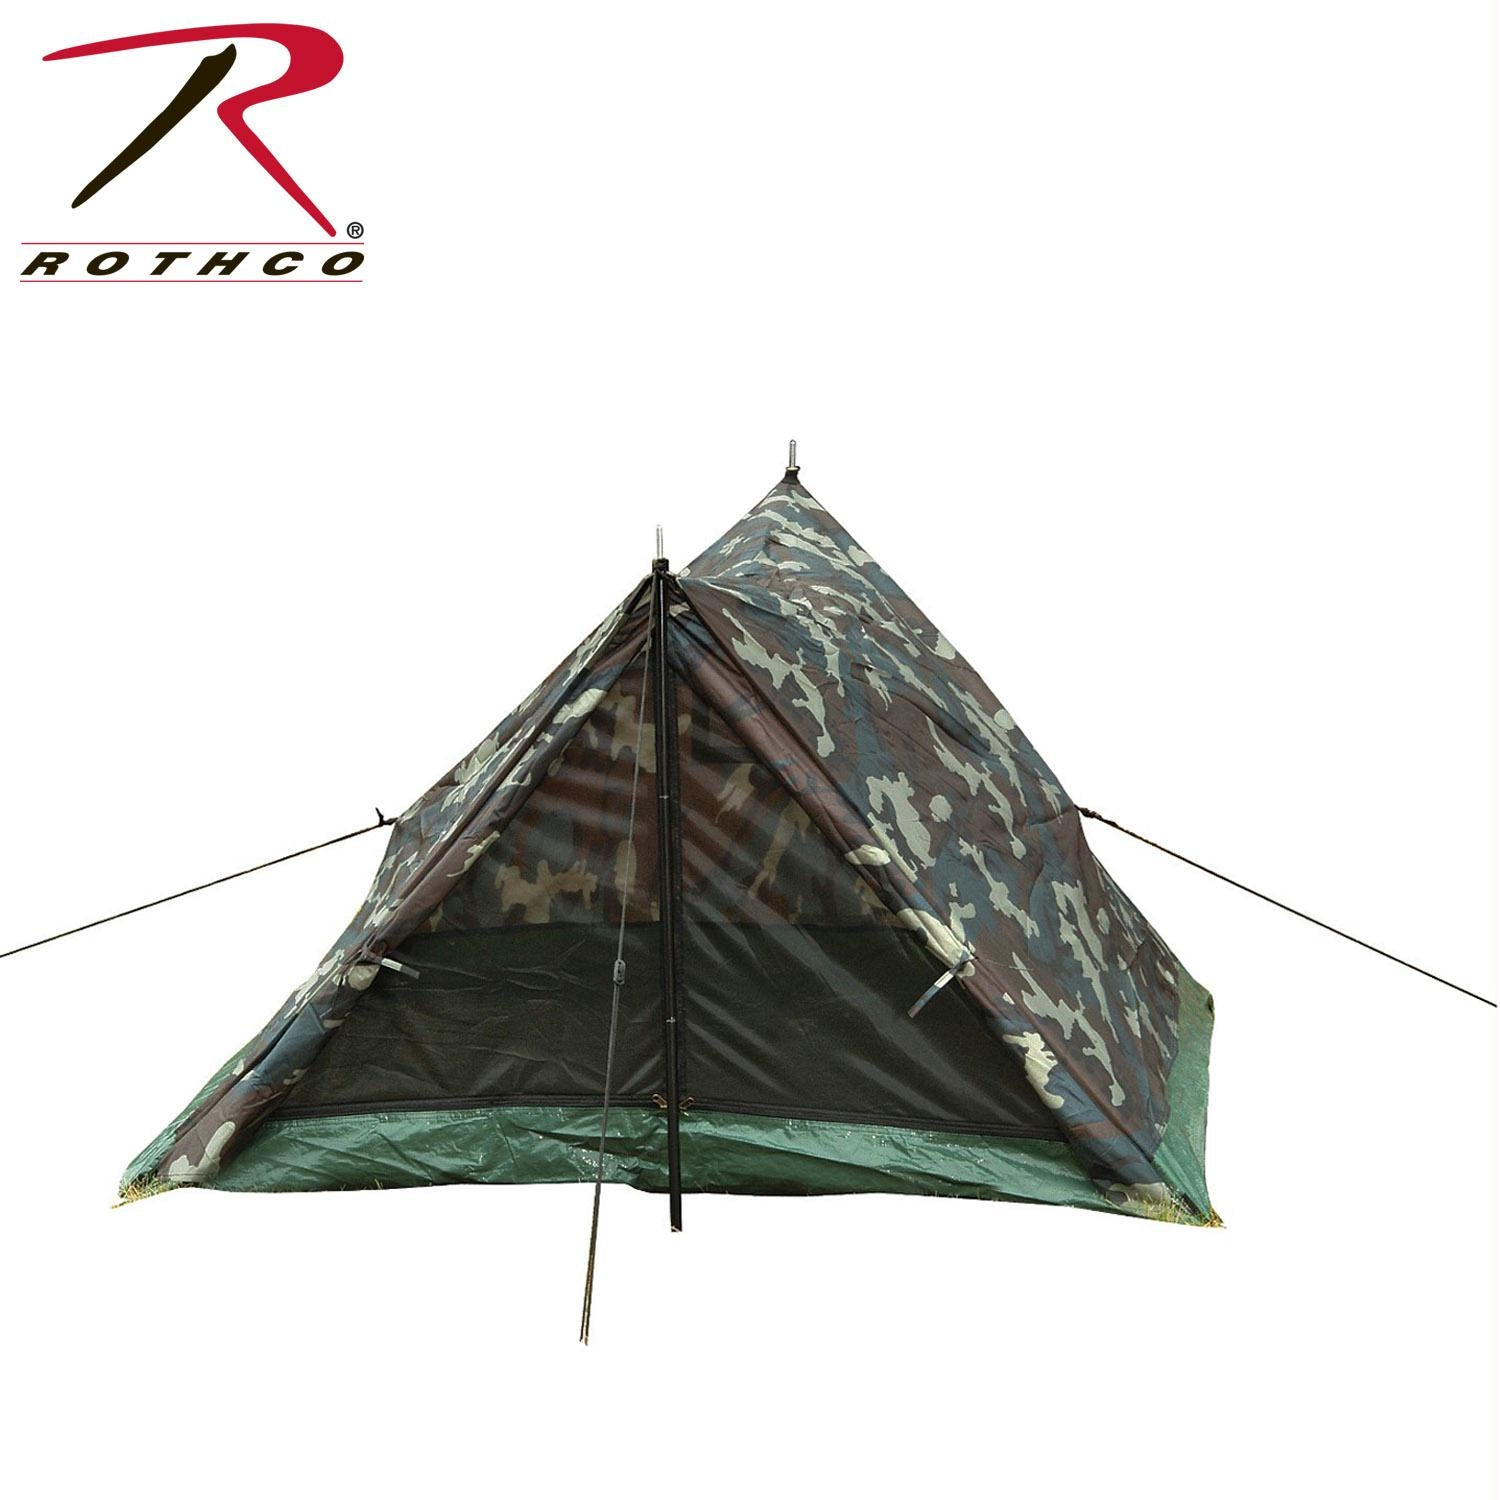 Rothco Camo Two Man Trail Tent - Woodland Camo